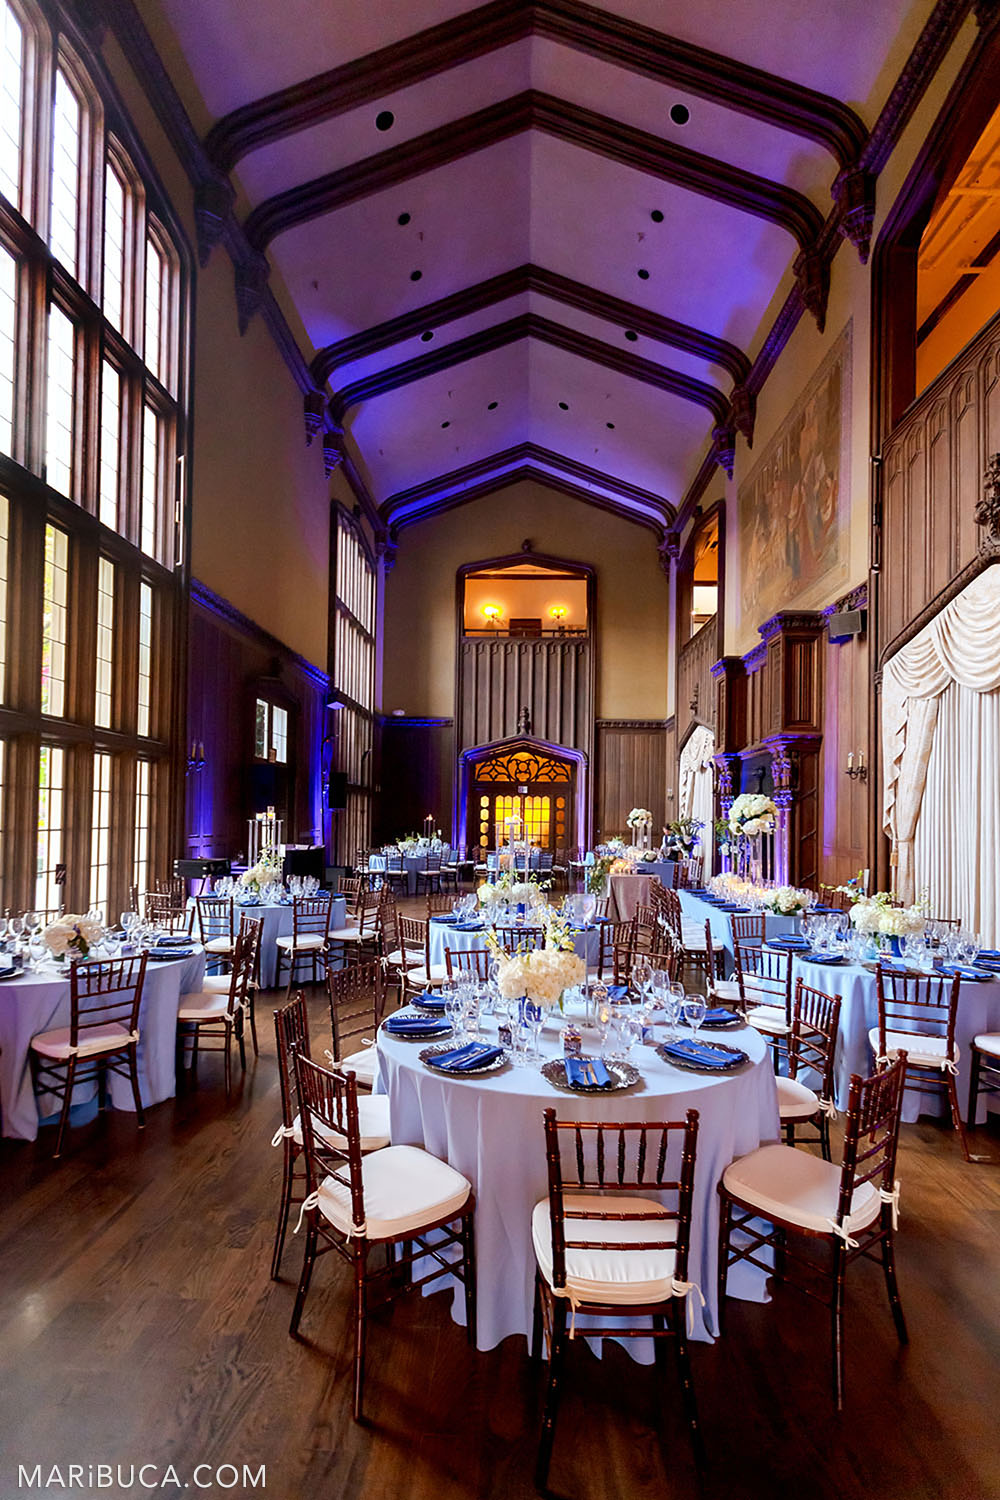 Beautiful venue with rounded light blue tables, high ceilings with purple lights in the Great Hall, Kohl Mansion, Burlingame